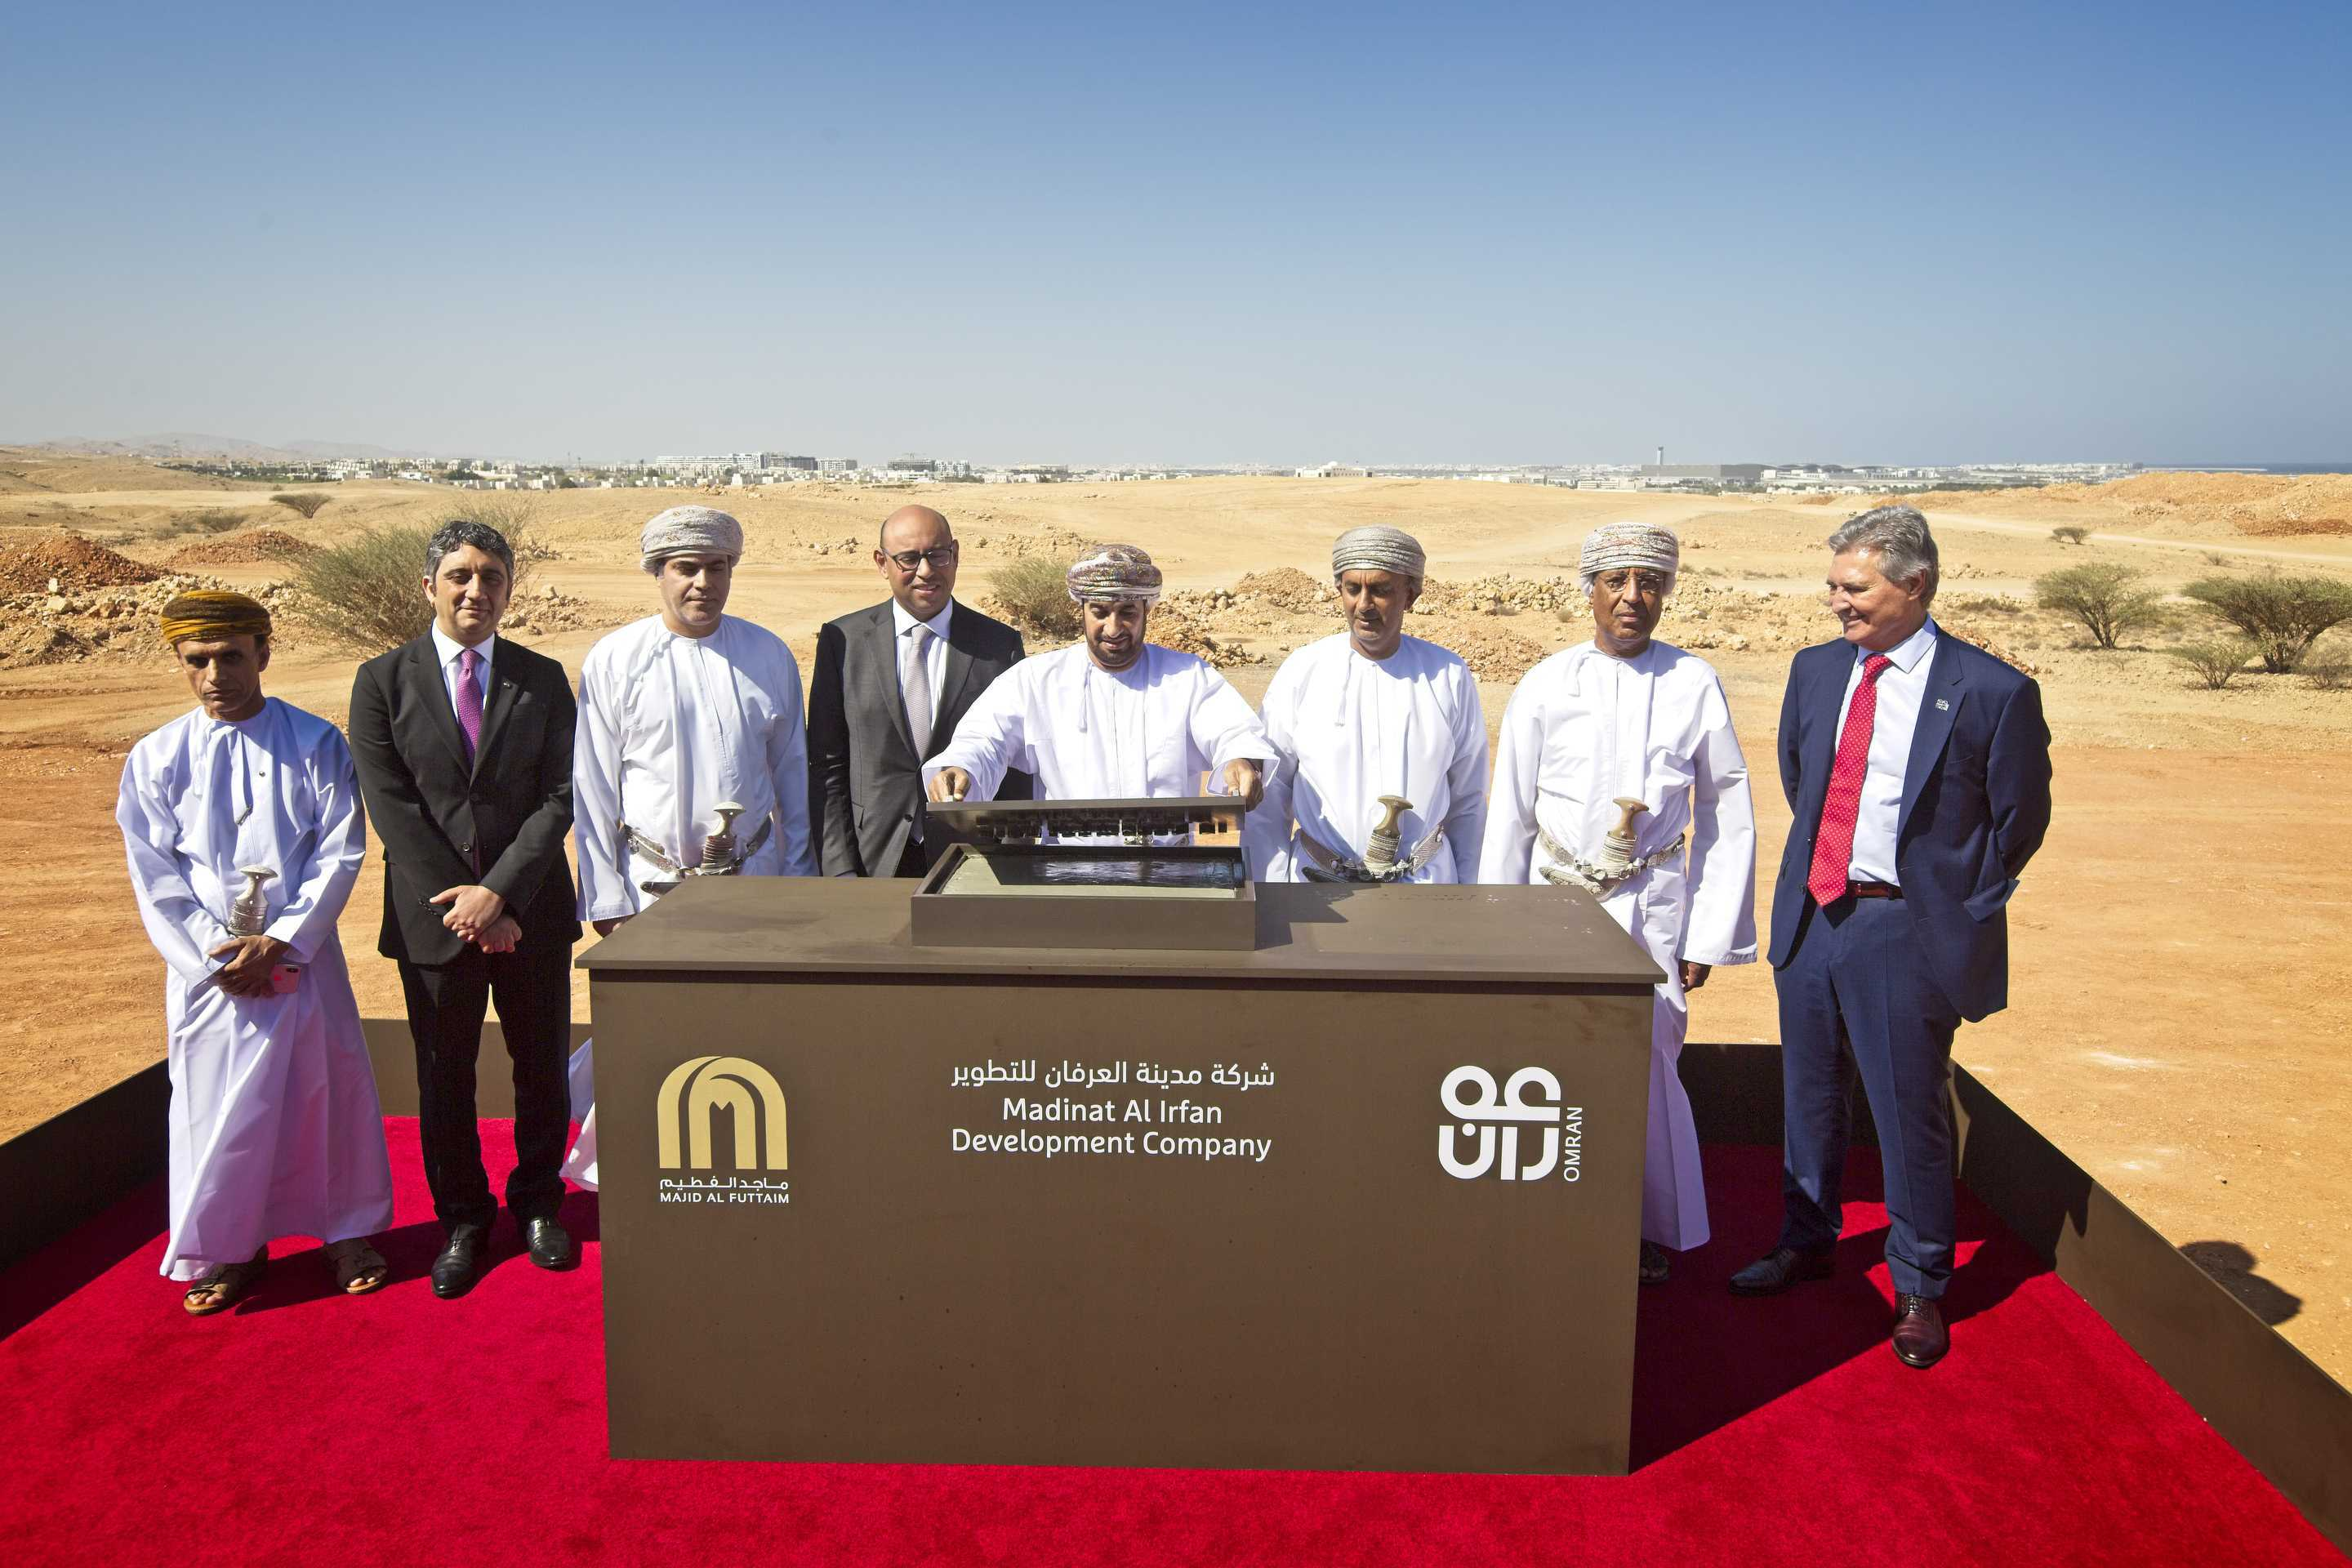 Muscat's new 'City for the Future' Inaugurated at Madinat Al Irfan